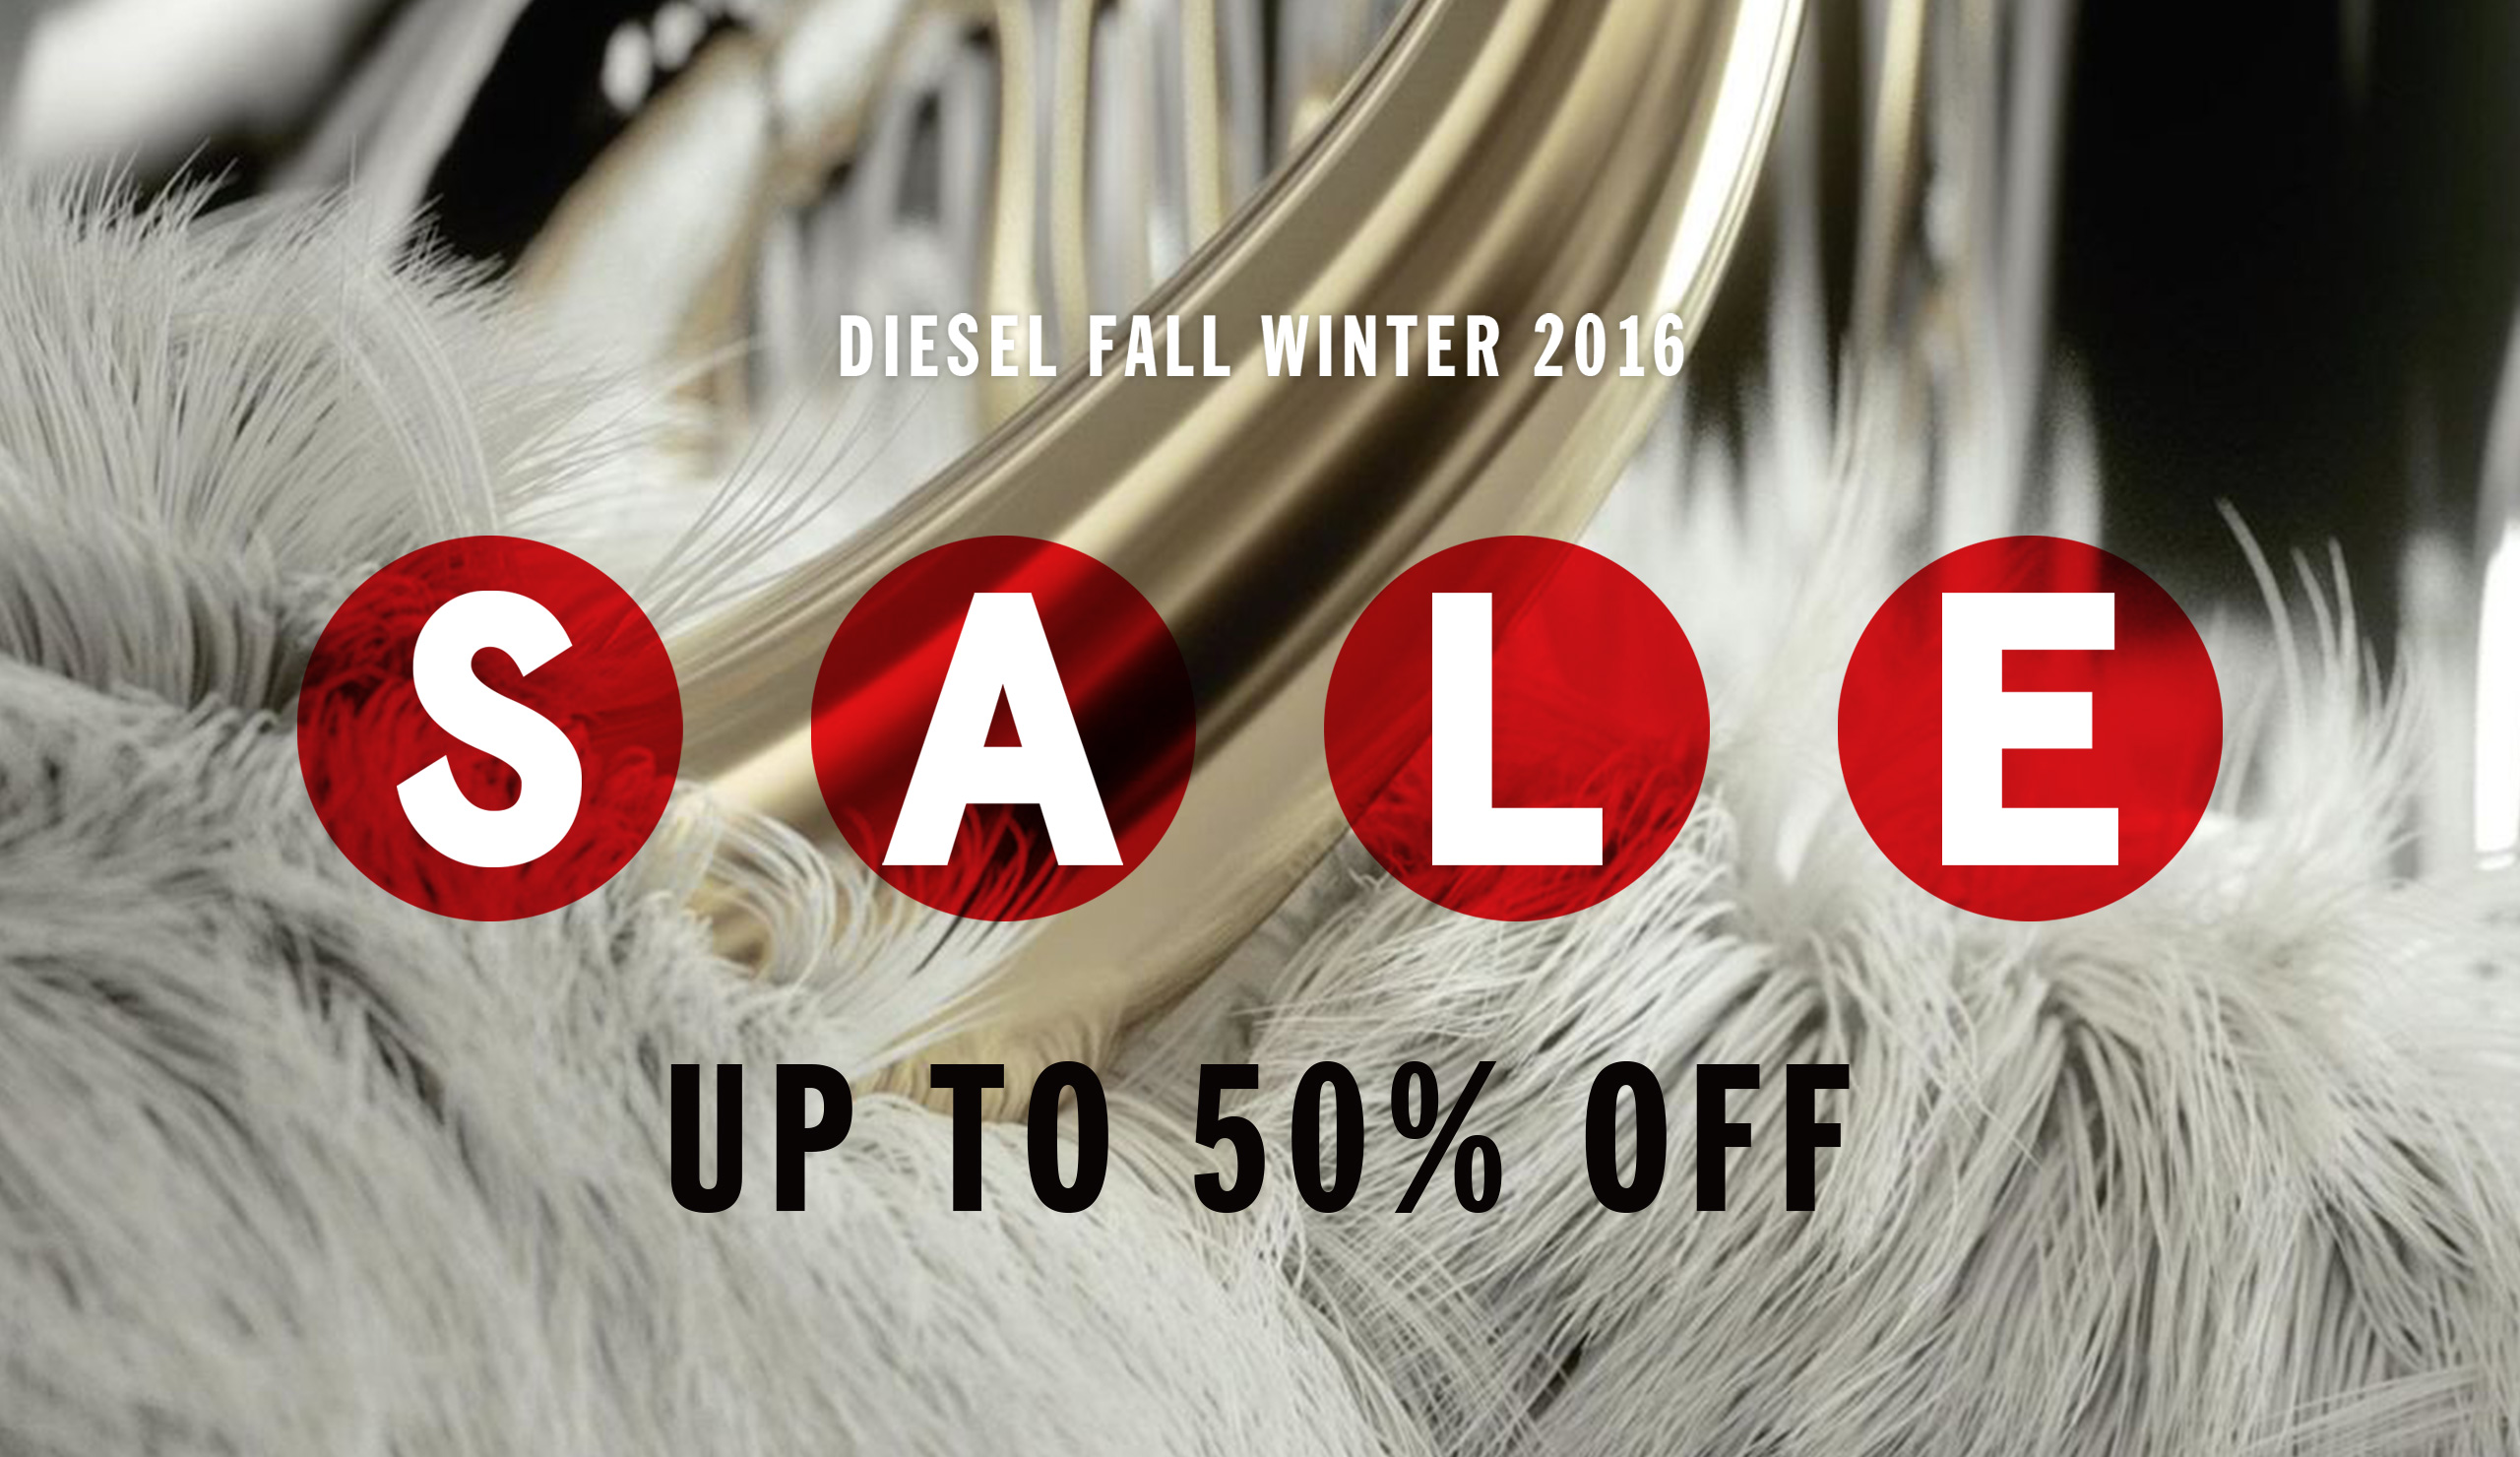 SALE UP TO 50%OFF